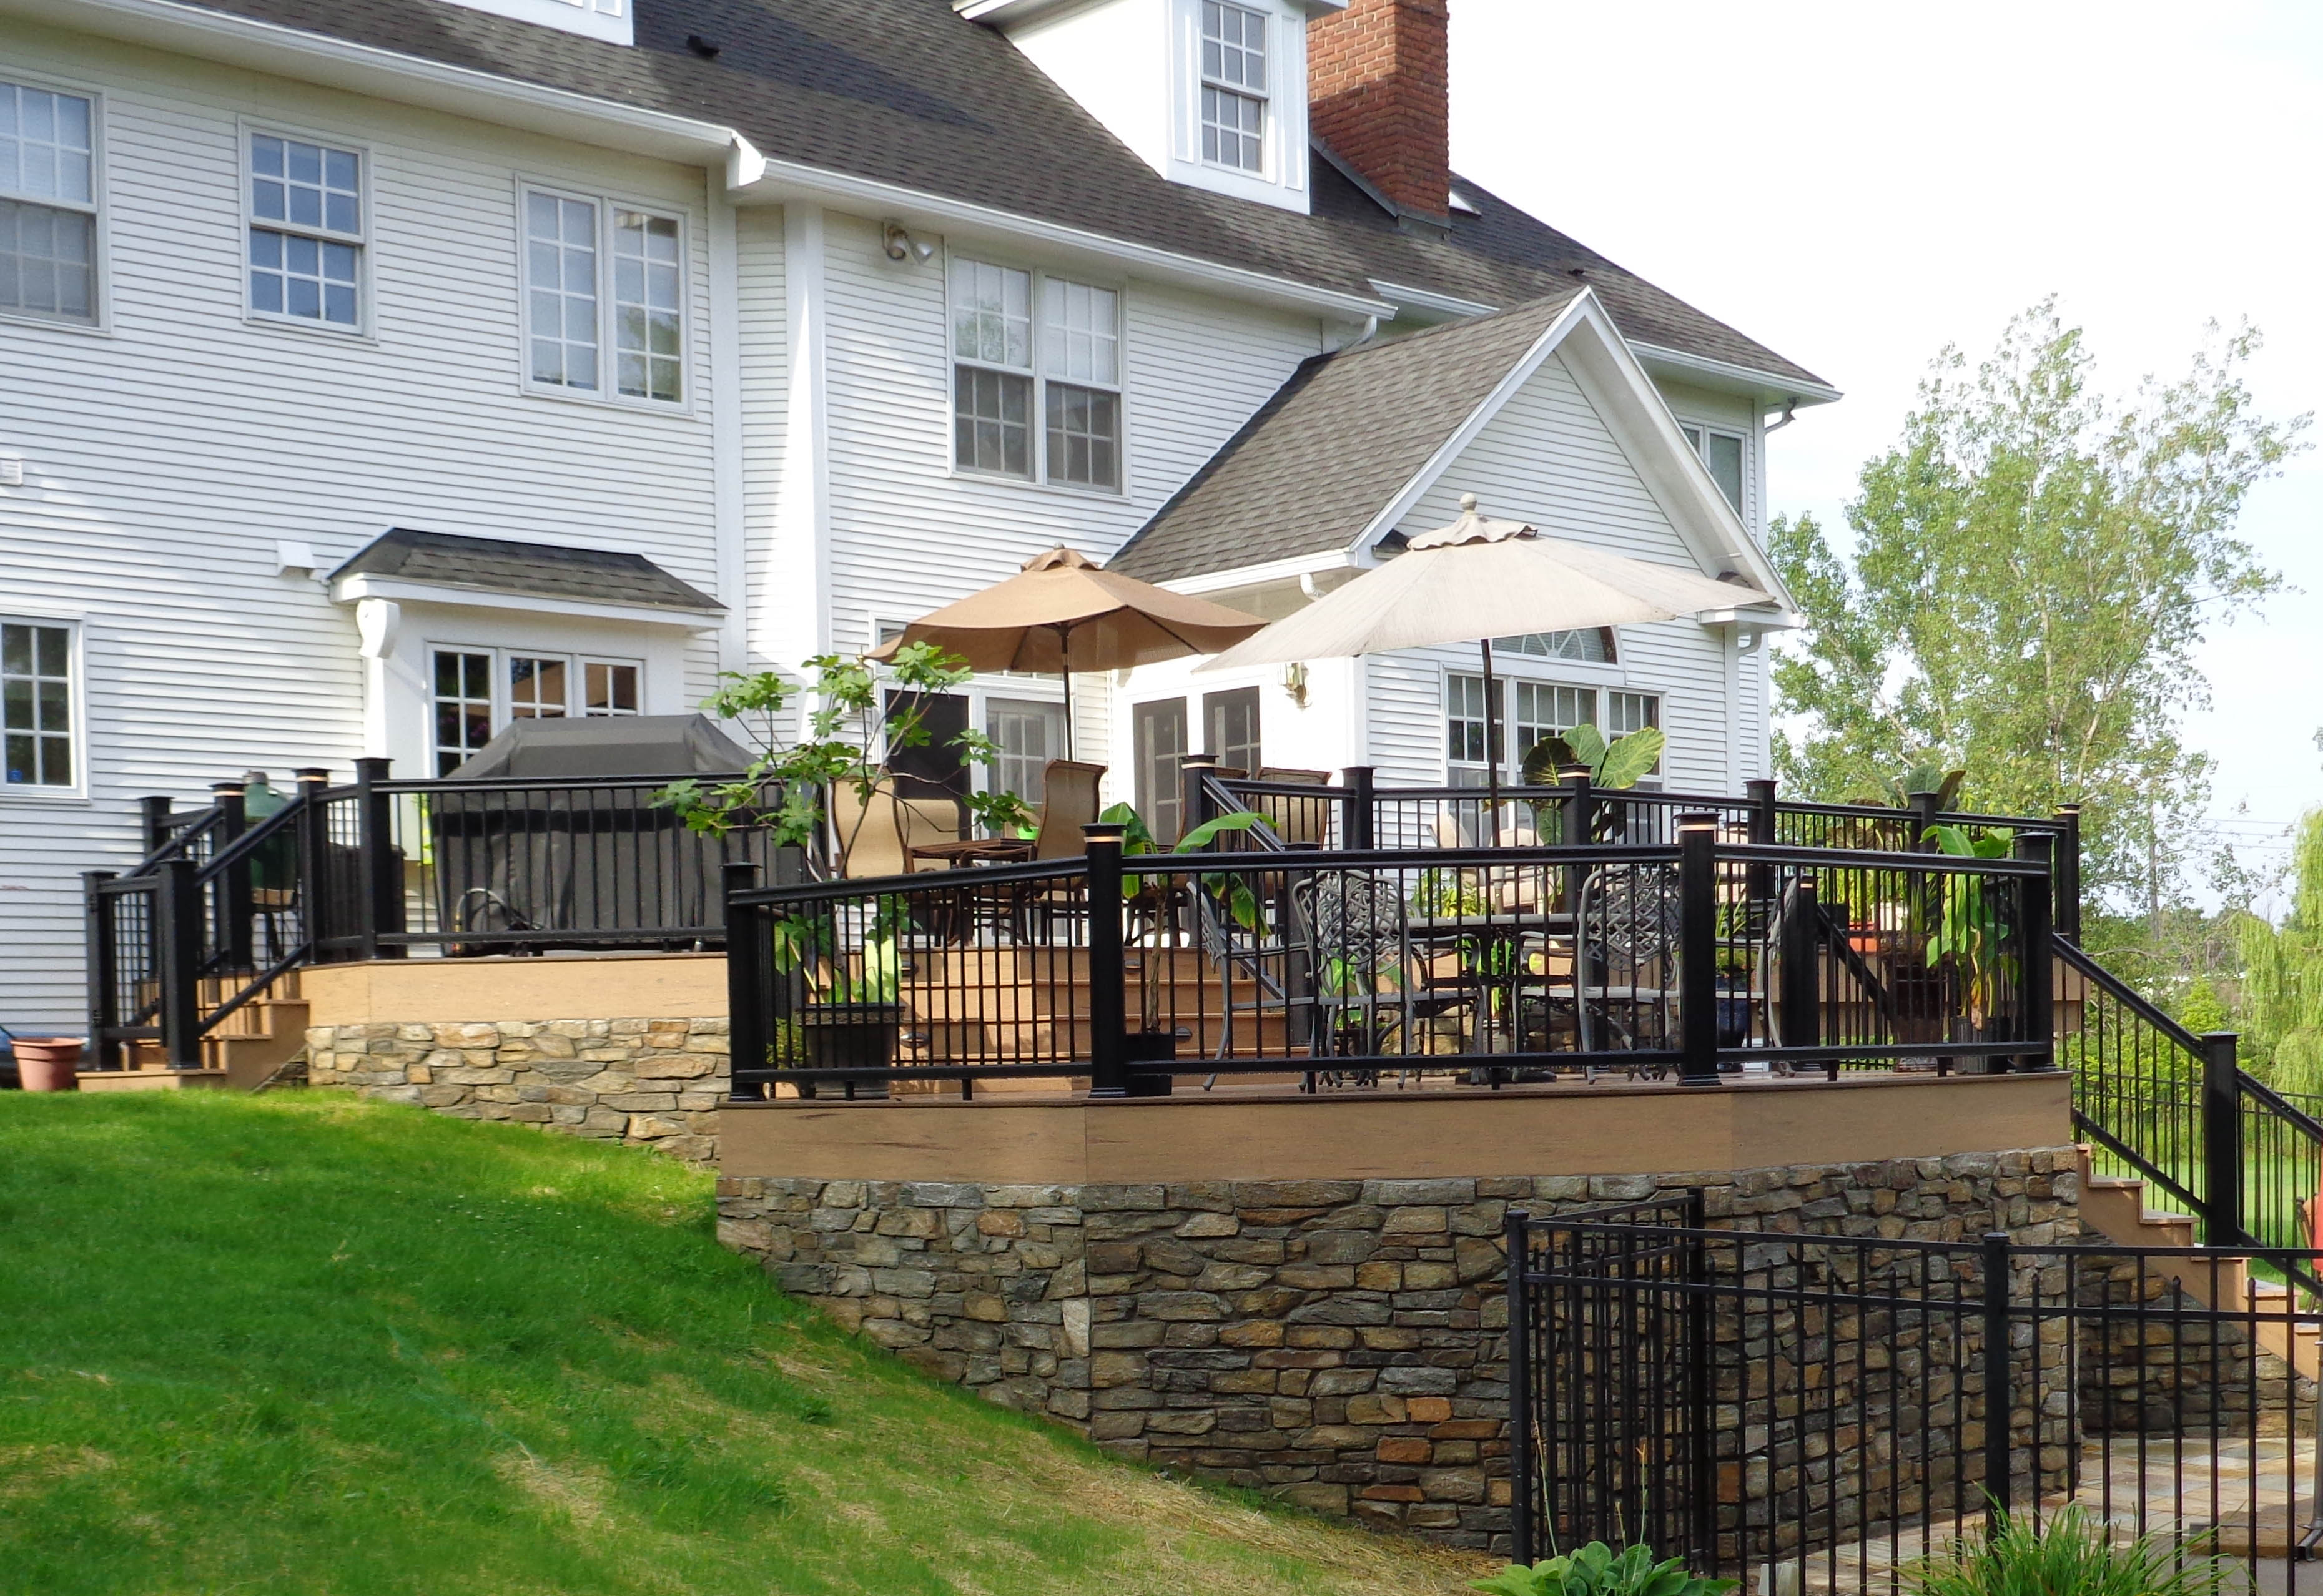 Keystone Custom Decks Selects Natural Looks Of Timbertech